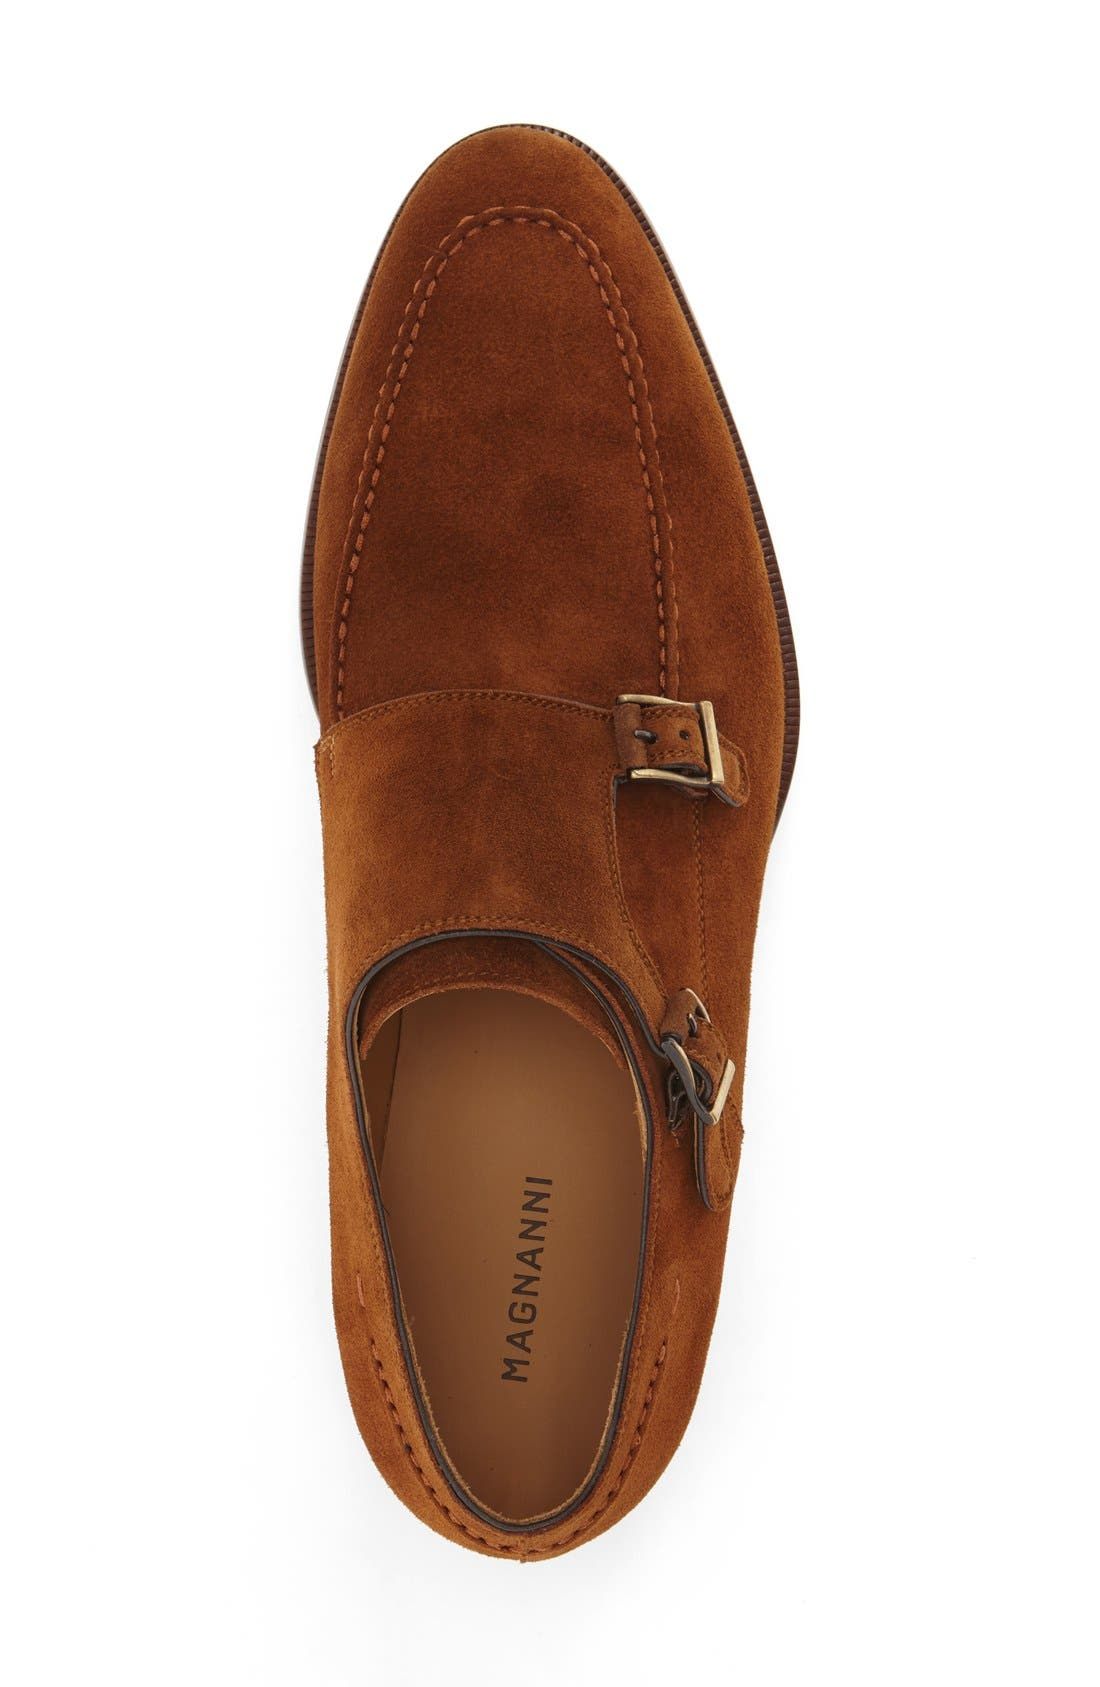 Alternate Image 3  - Magnanni 'Tomas' Double Monk Strap Shoe (Men)